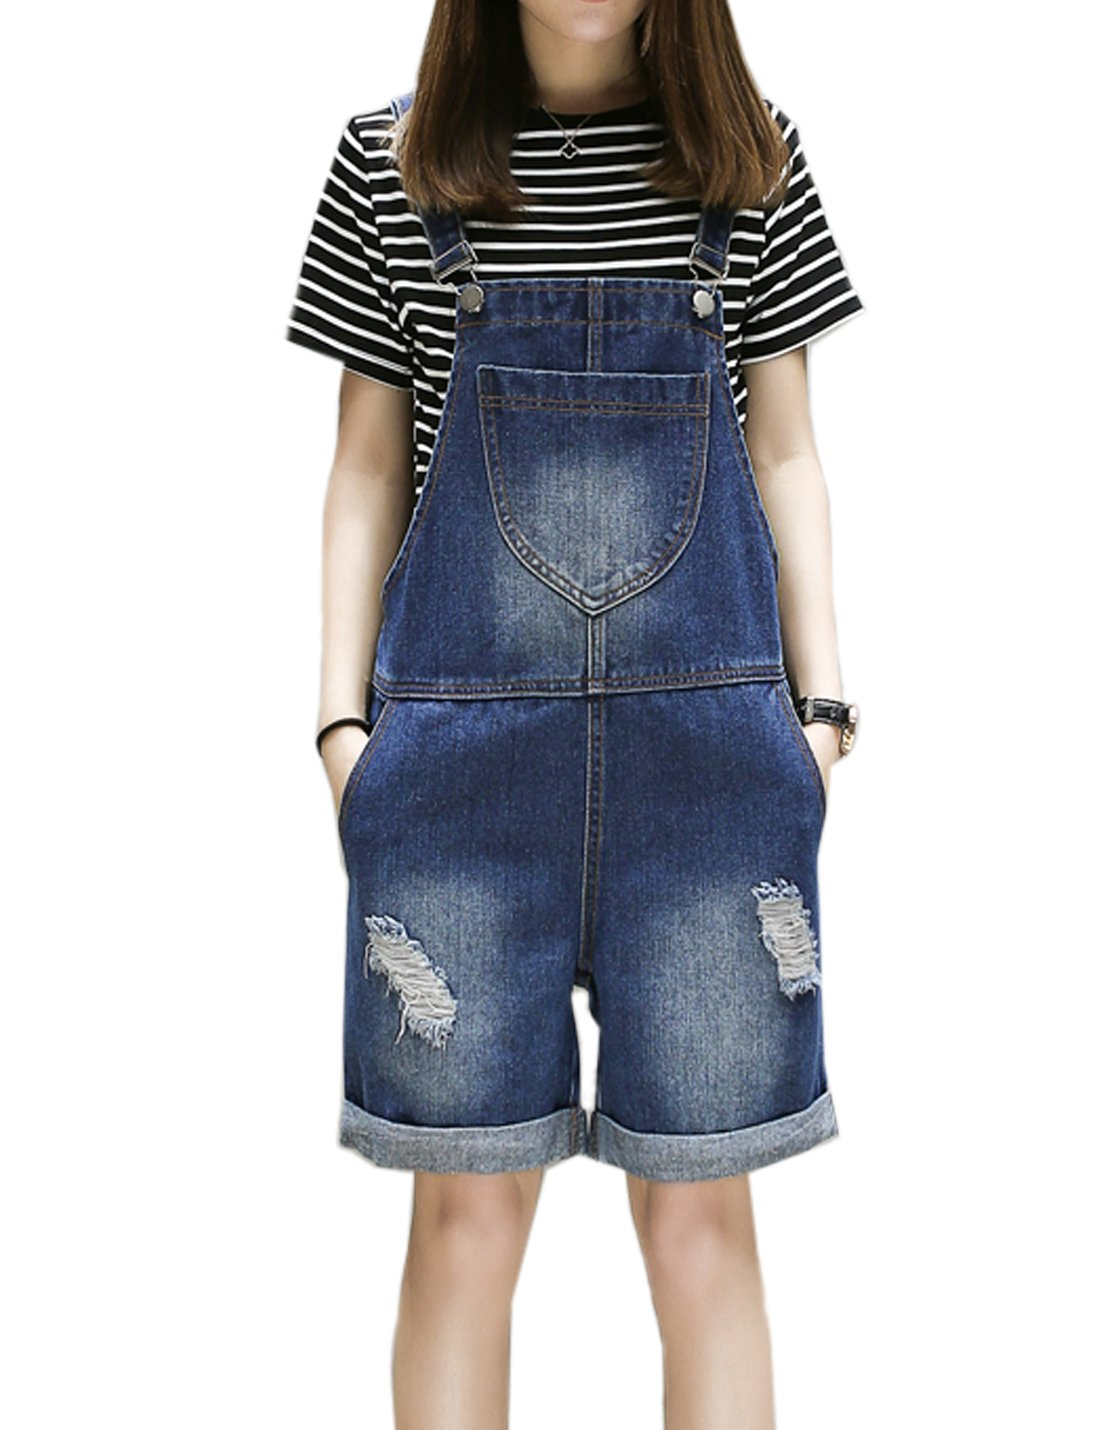 Flygo Women's Plus Size Loose Denim Distressed Bib Overalls Shorts Jean Jumpsuits with Pockets (US 16W, Blue)